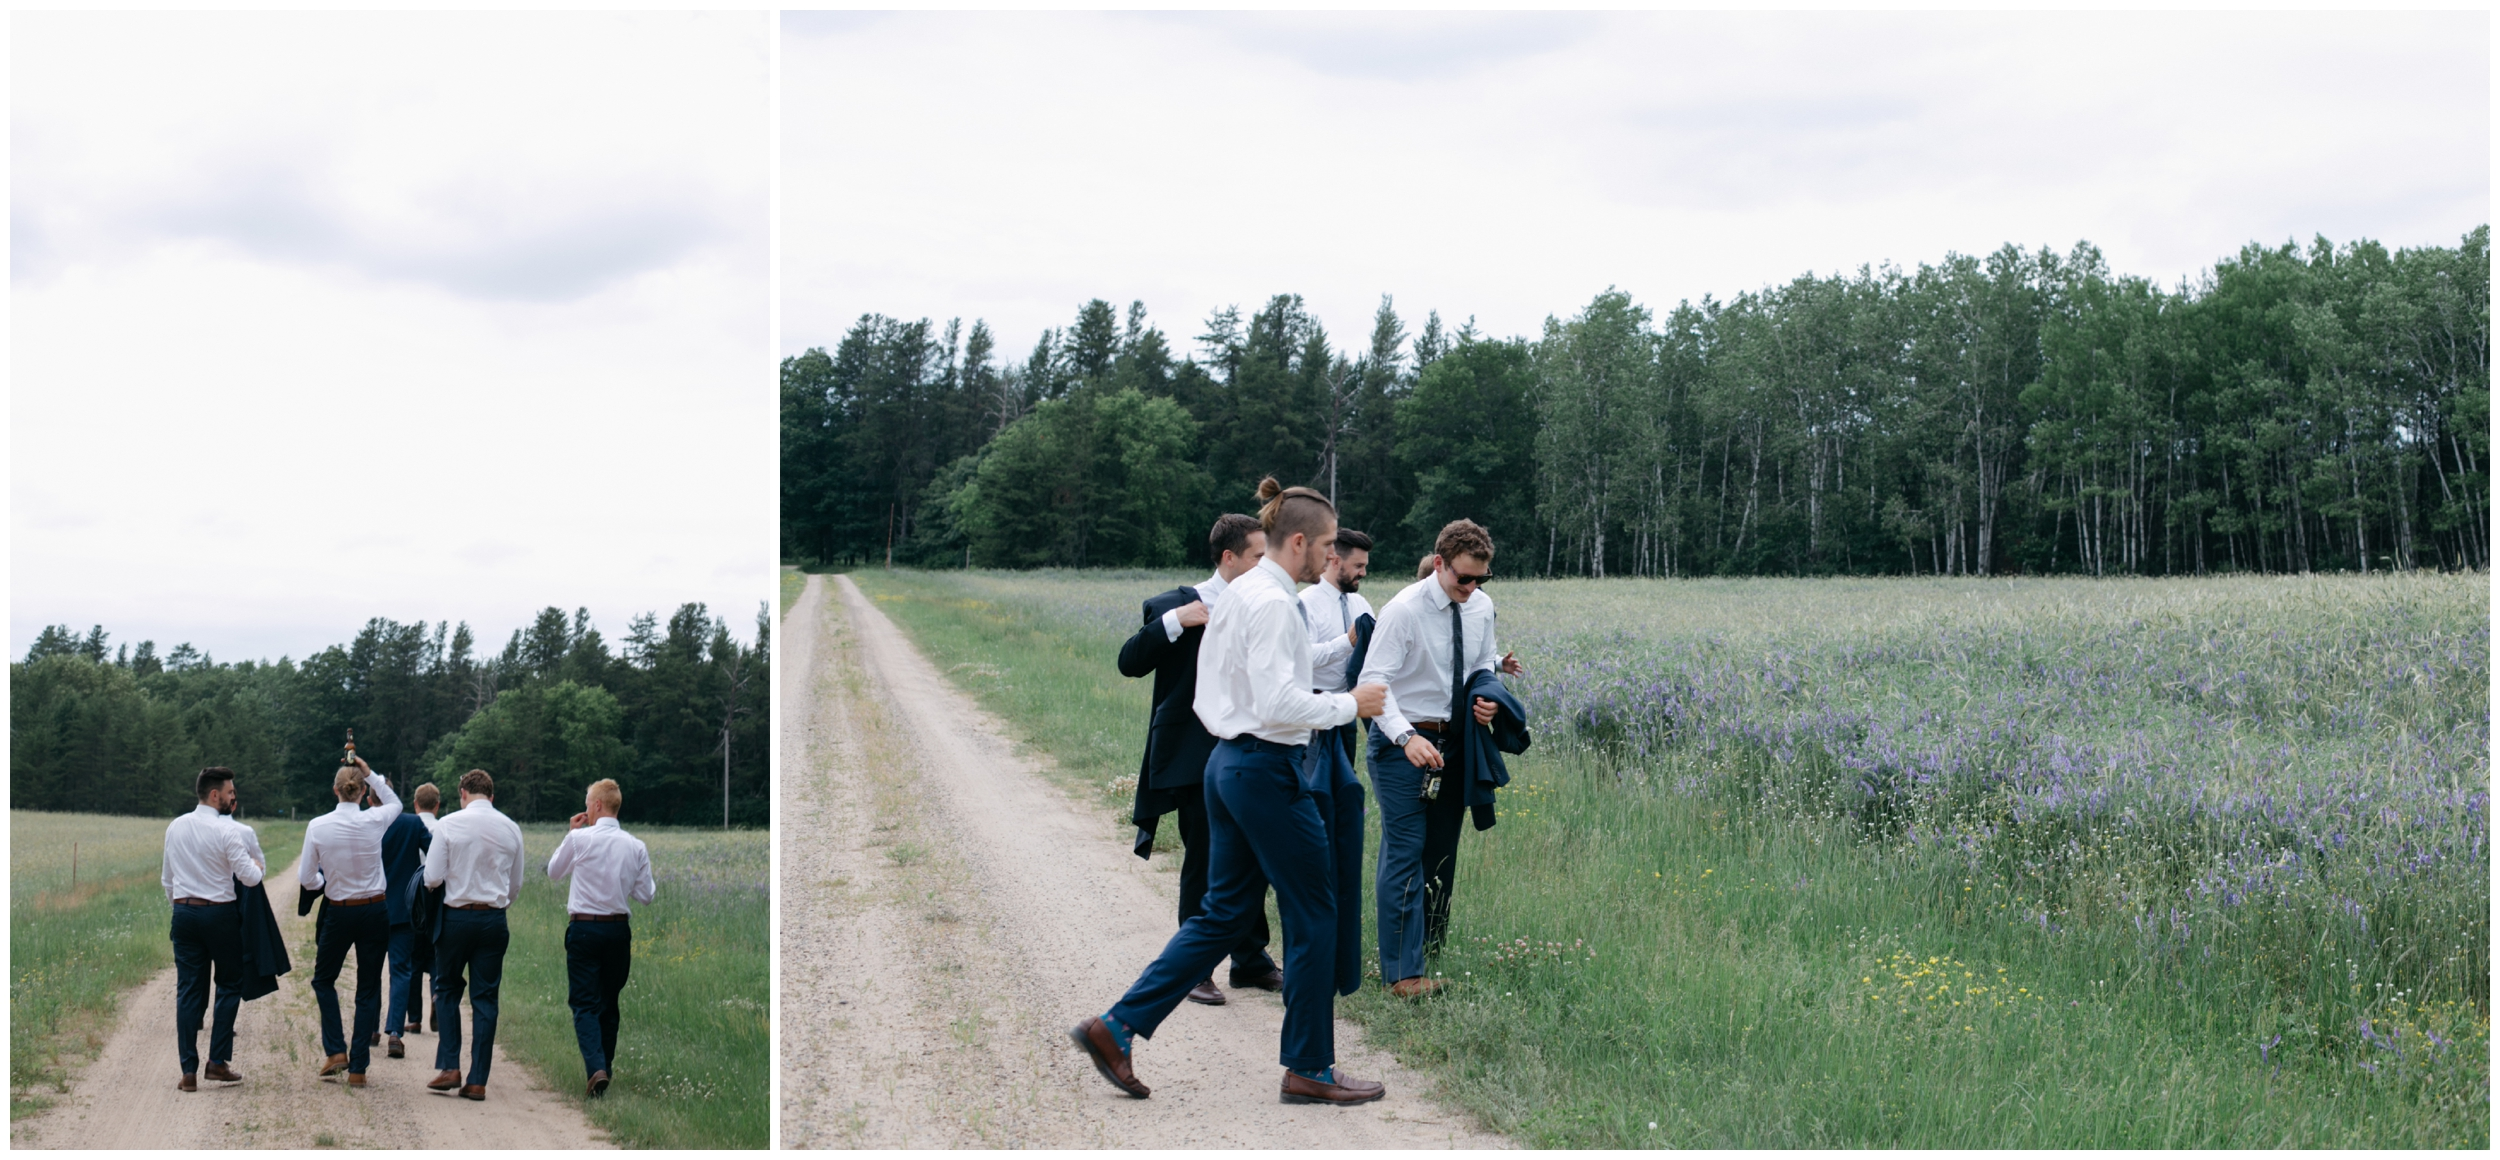 Stylish hipster groom and groomsmen at the Whitely Creek Inn